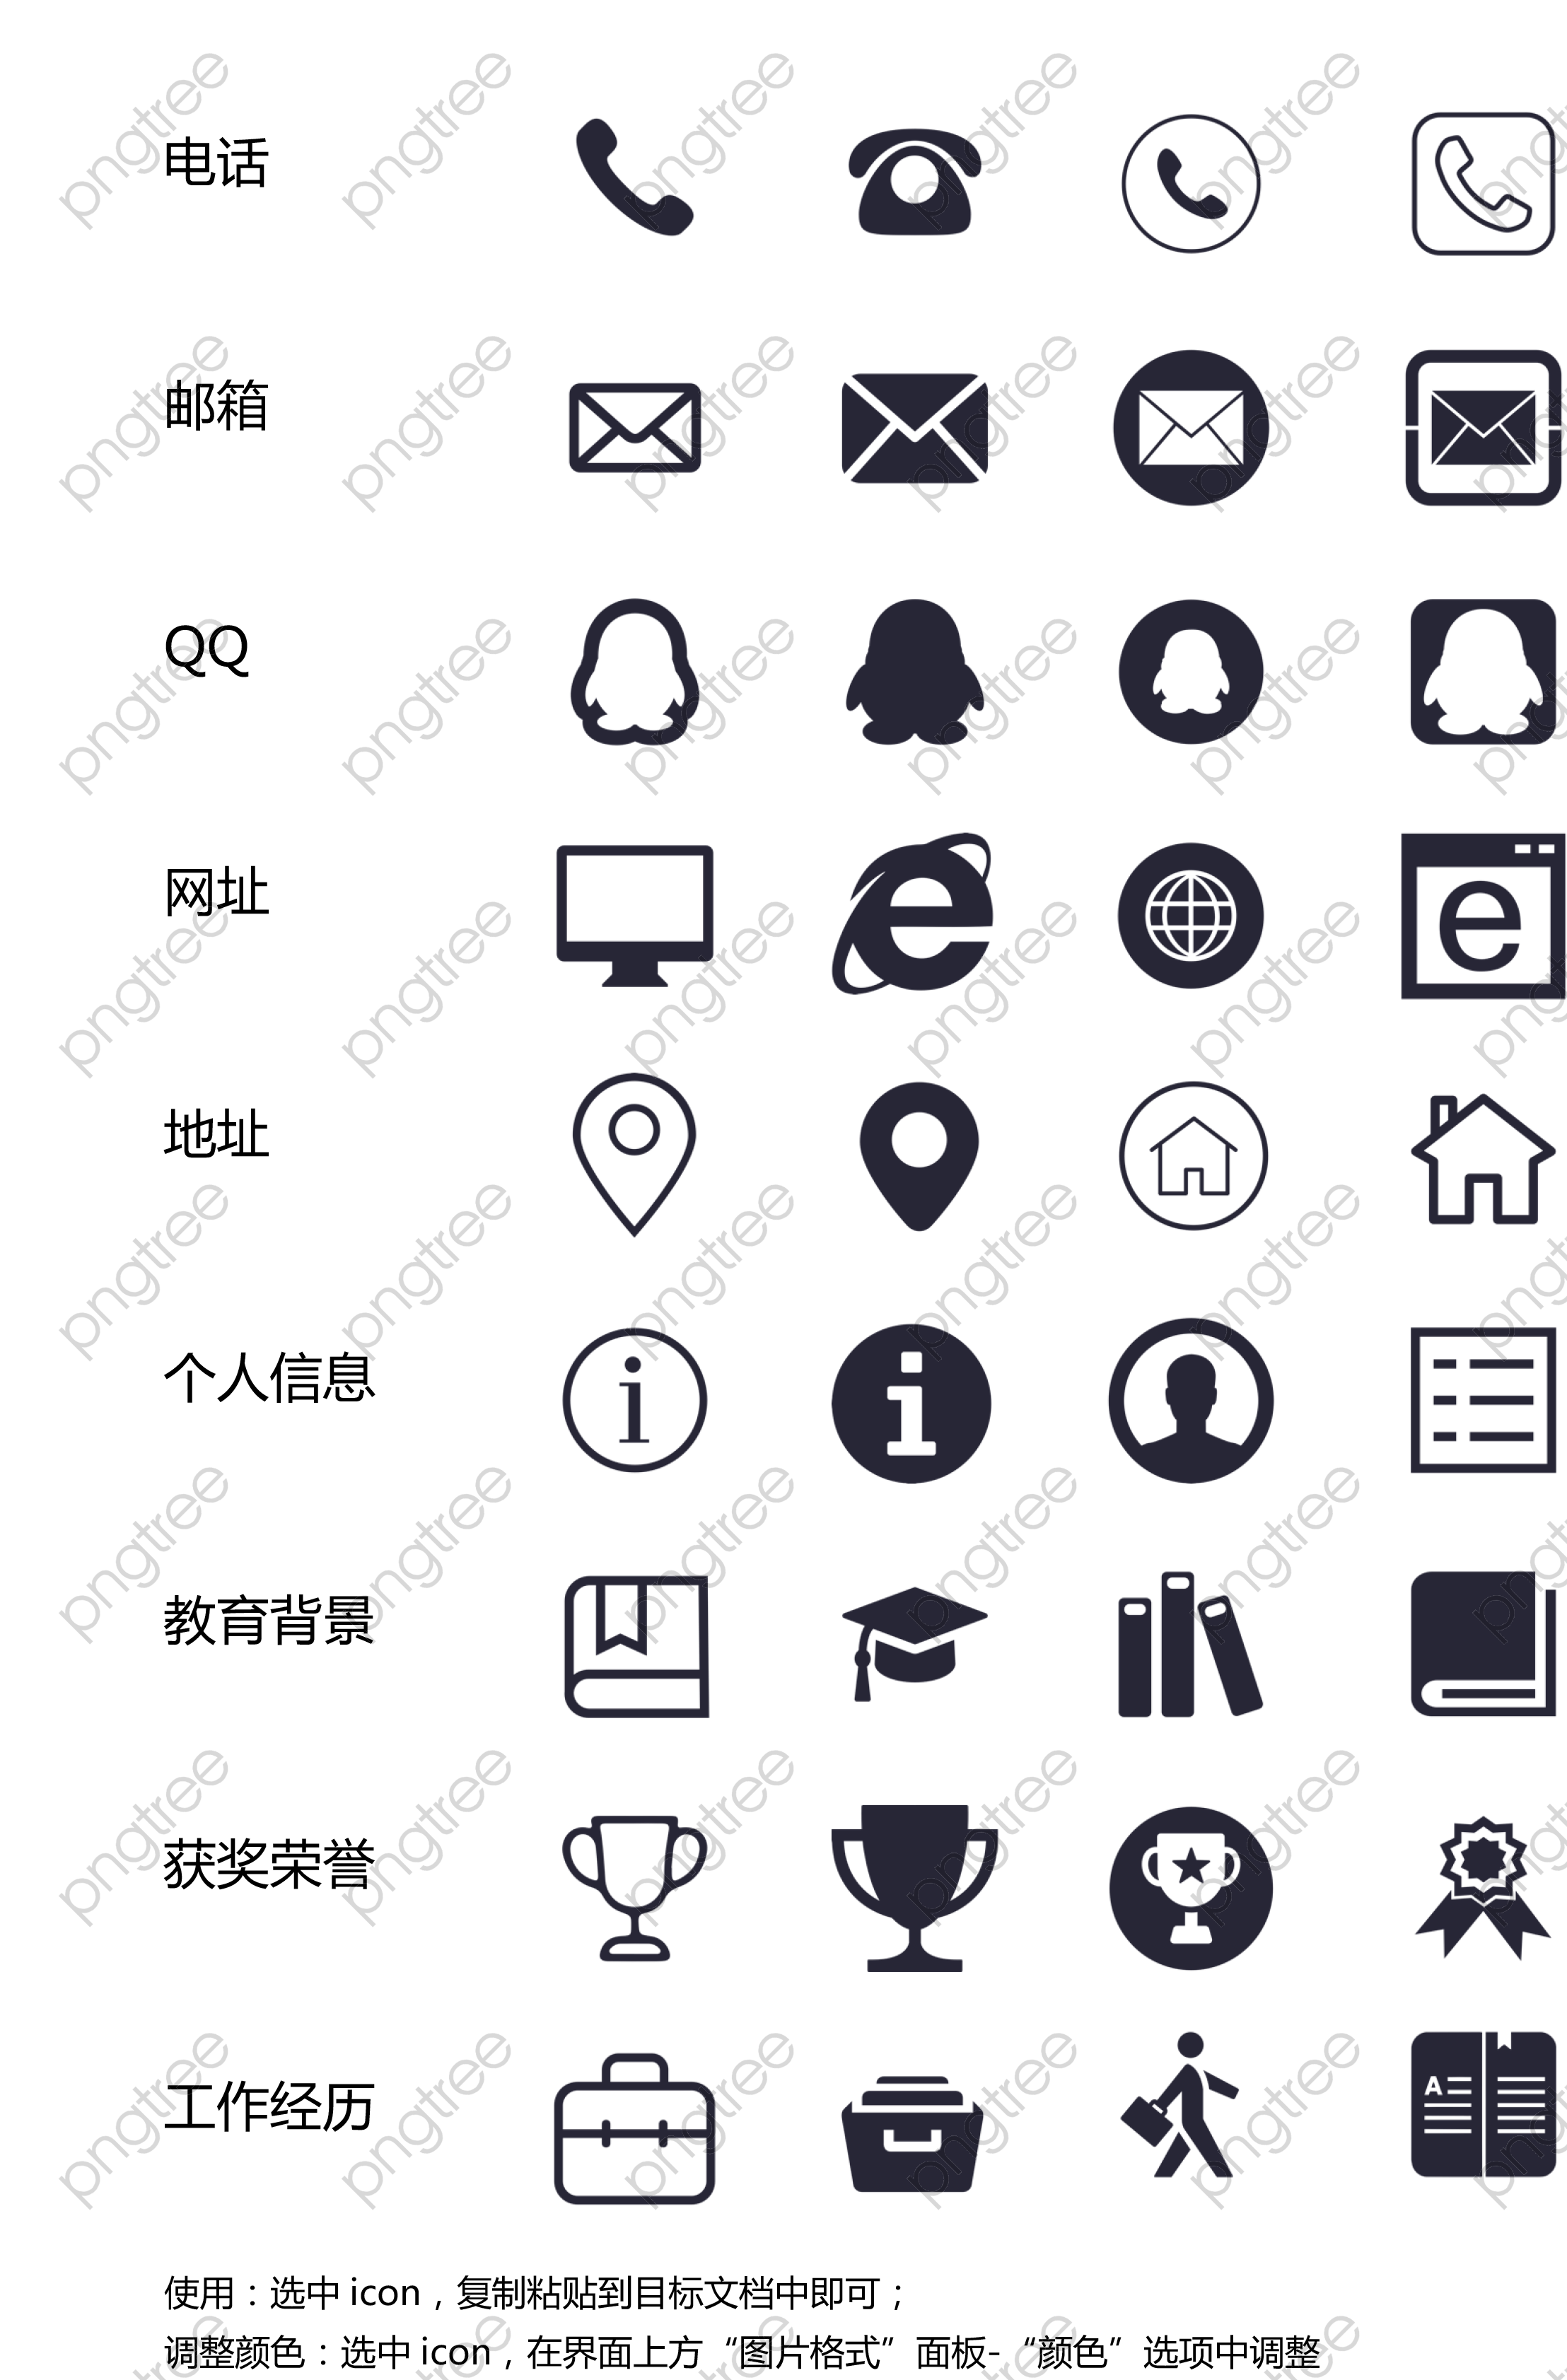 transparent cv contacts icon element png format image with size 2216 3366 preview page